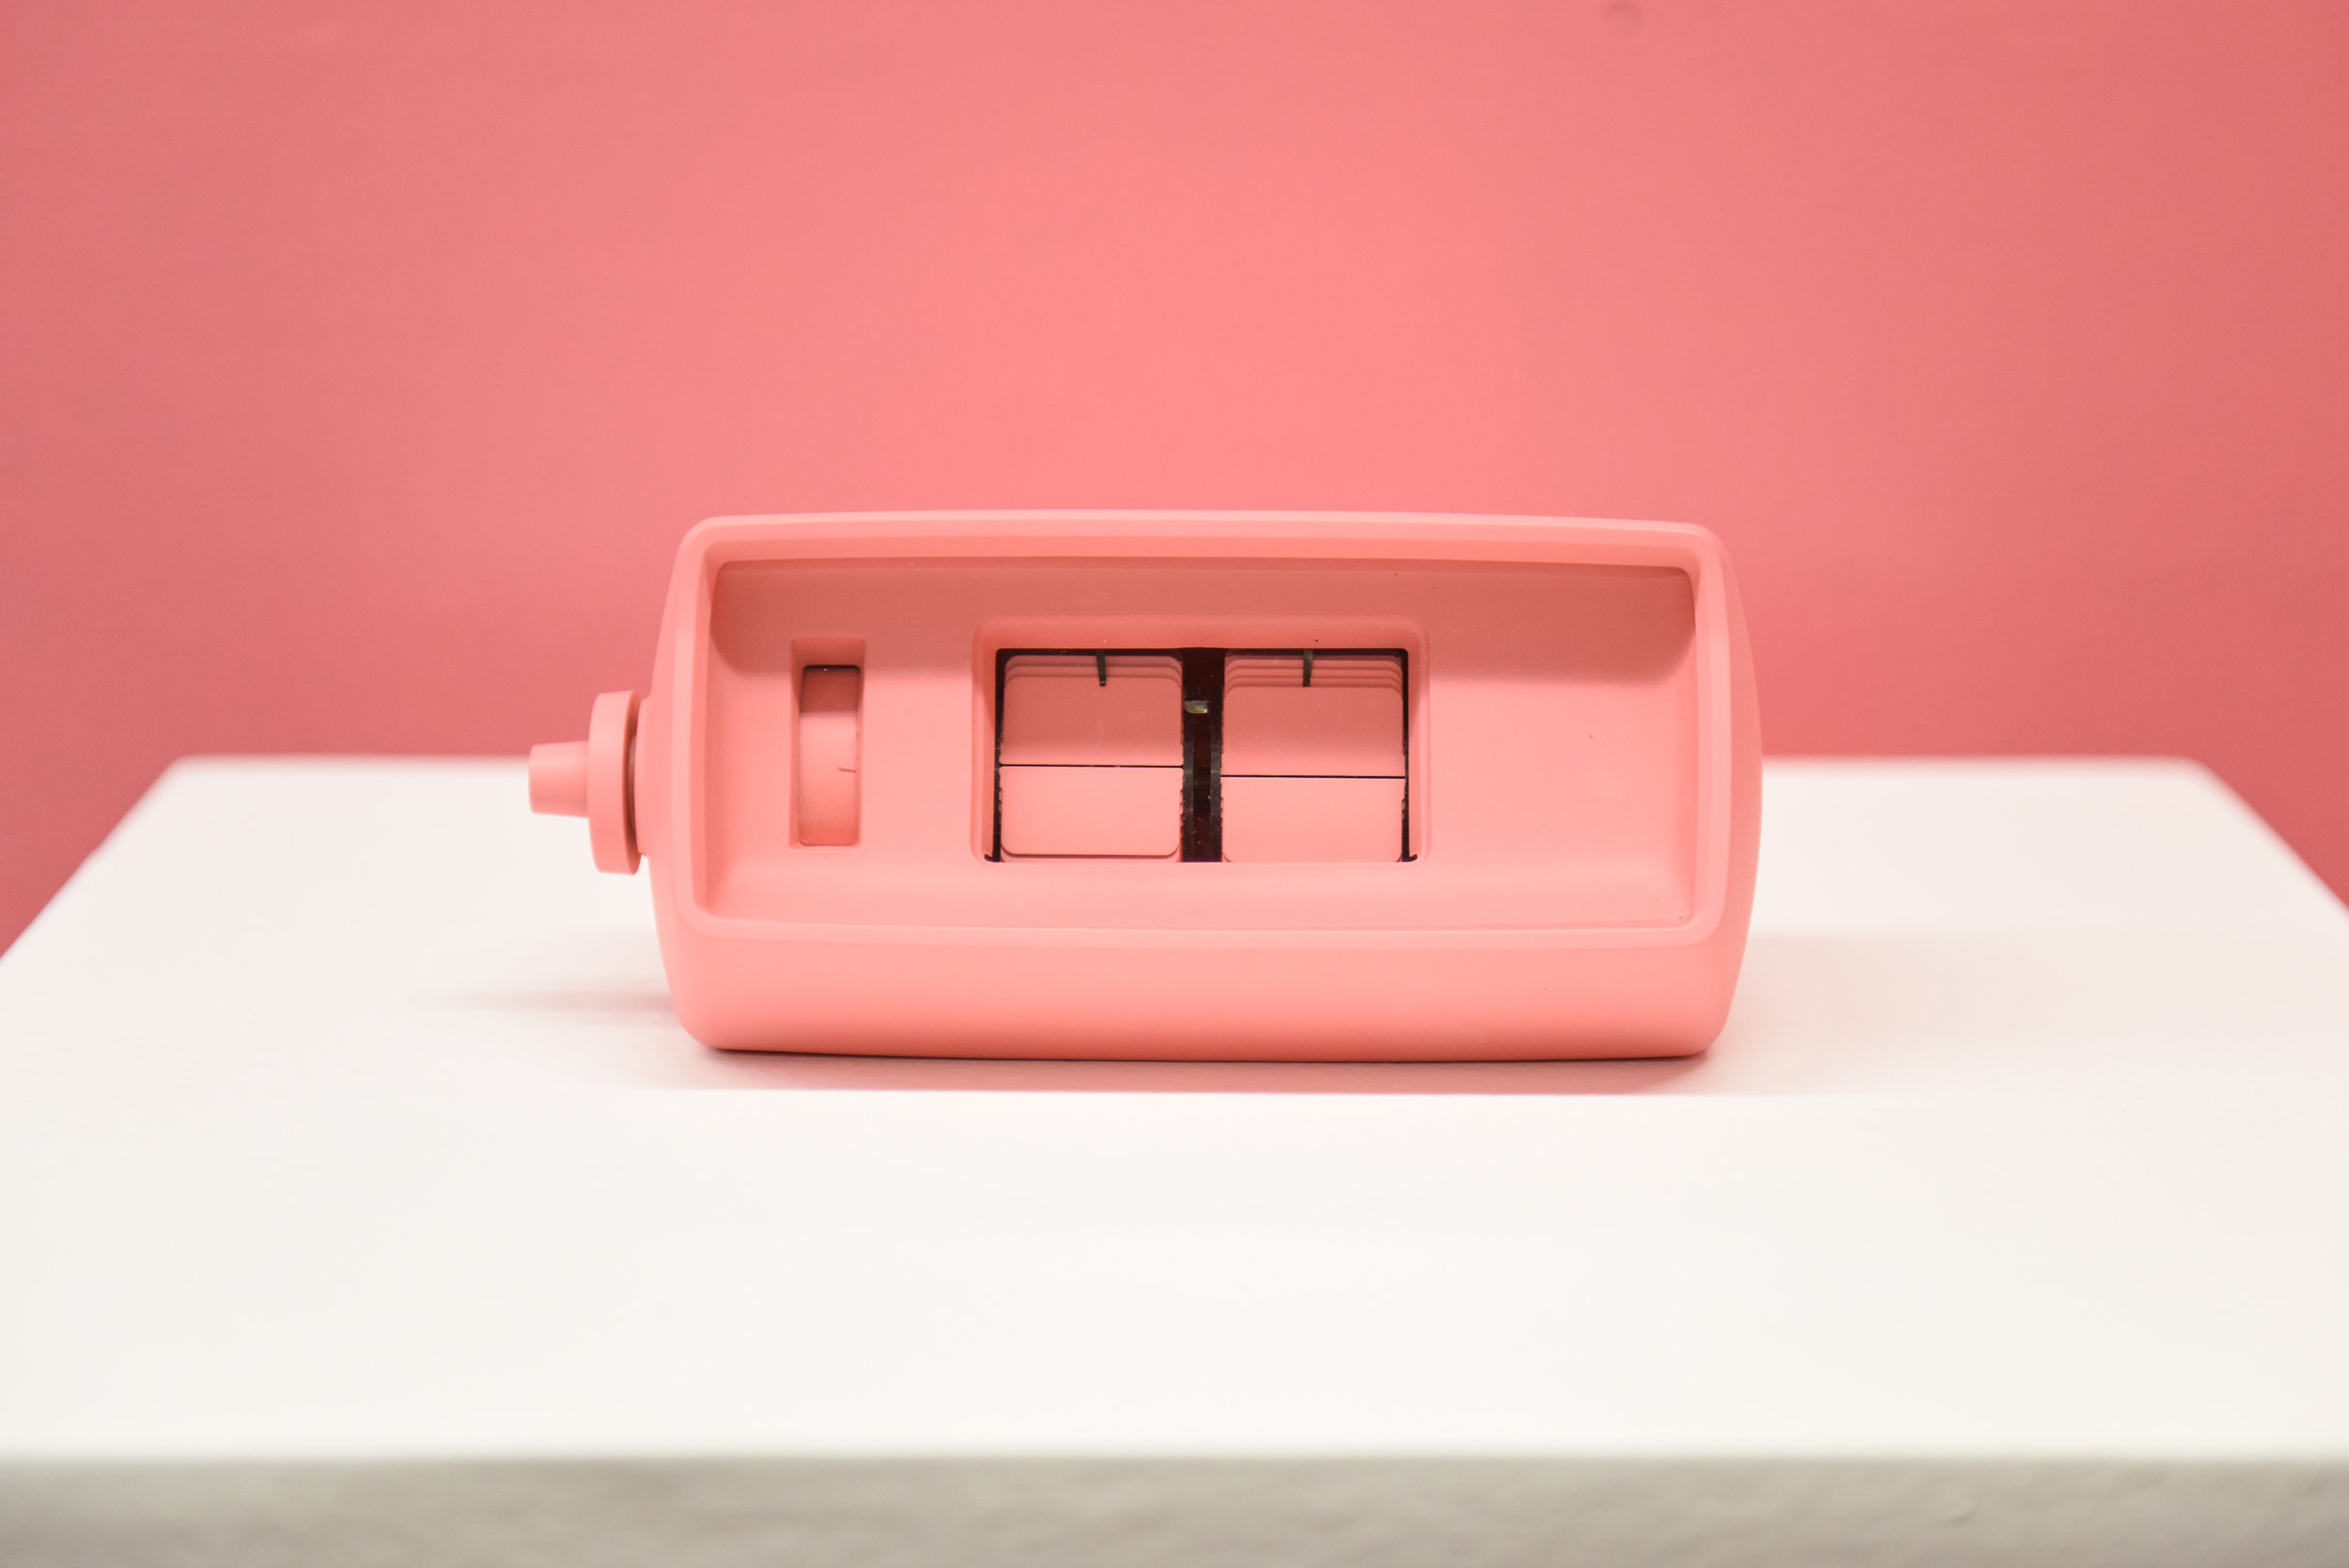 It's Schauss Time   2013   Vintage flip clock, Baker-Miller Pink paint   7x3.5x3.5 inches   Human Condition Exhibition curated by John Wolf, Los Angeles, CA. 10/01/16